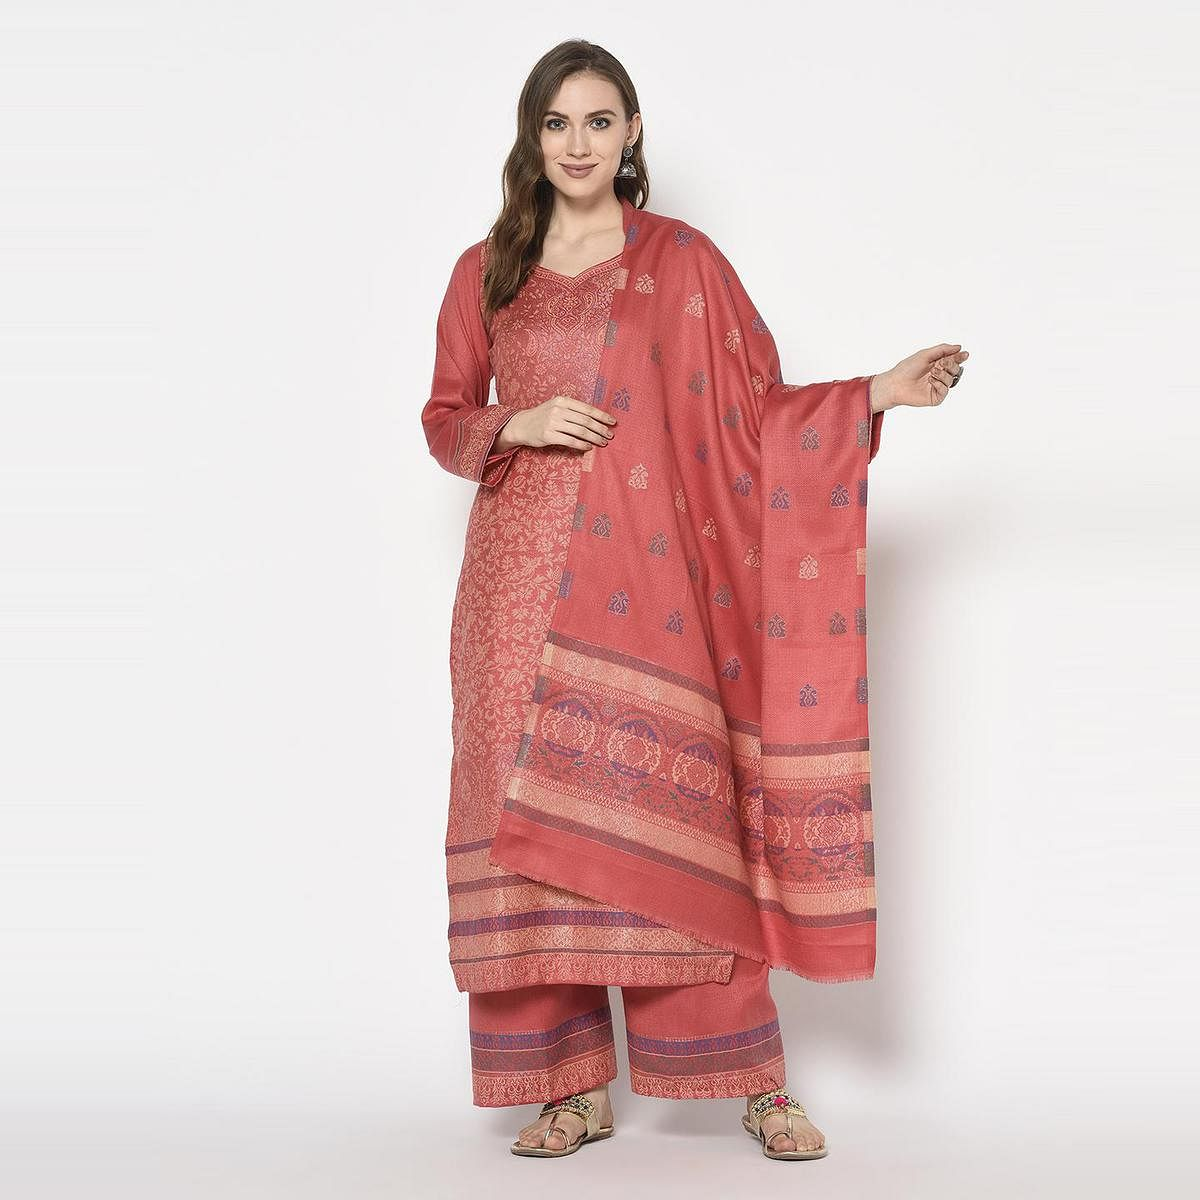 Safaa - Peach Colored Party Wear Printed Acro Wool Dress Material